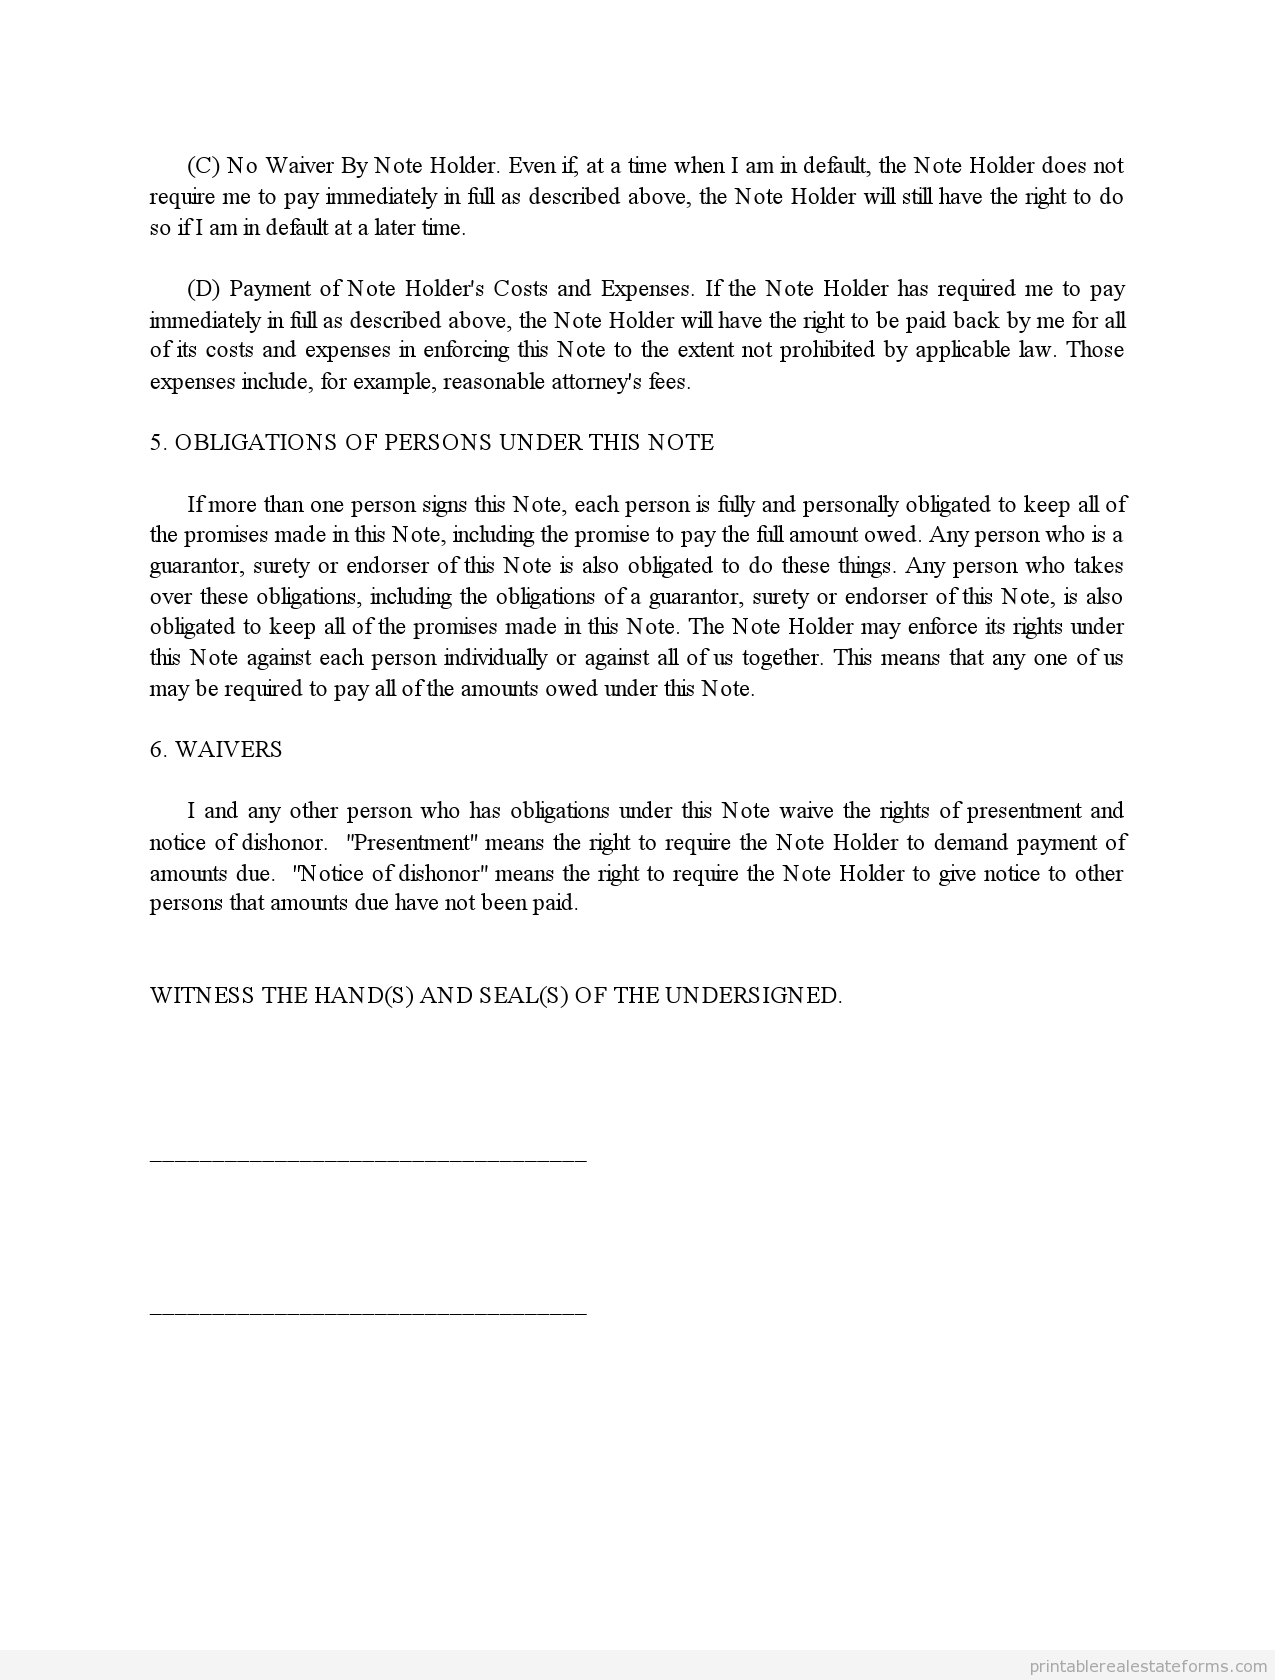 Subordination Agreement Template Home Sale Agreement Template